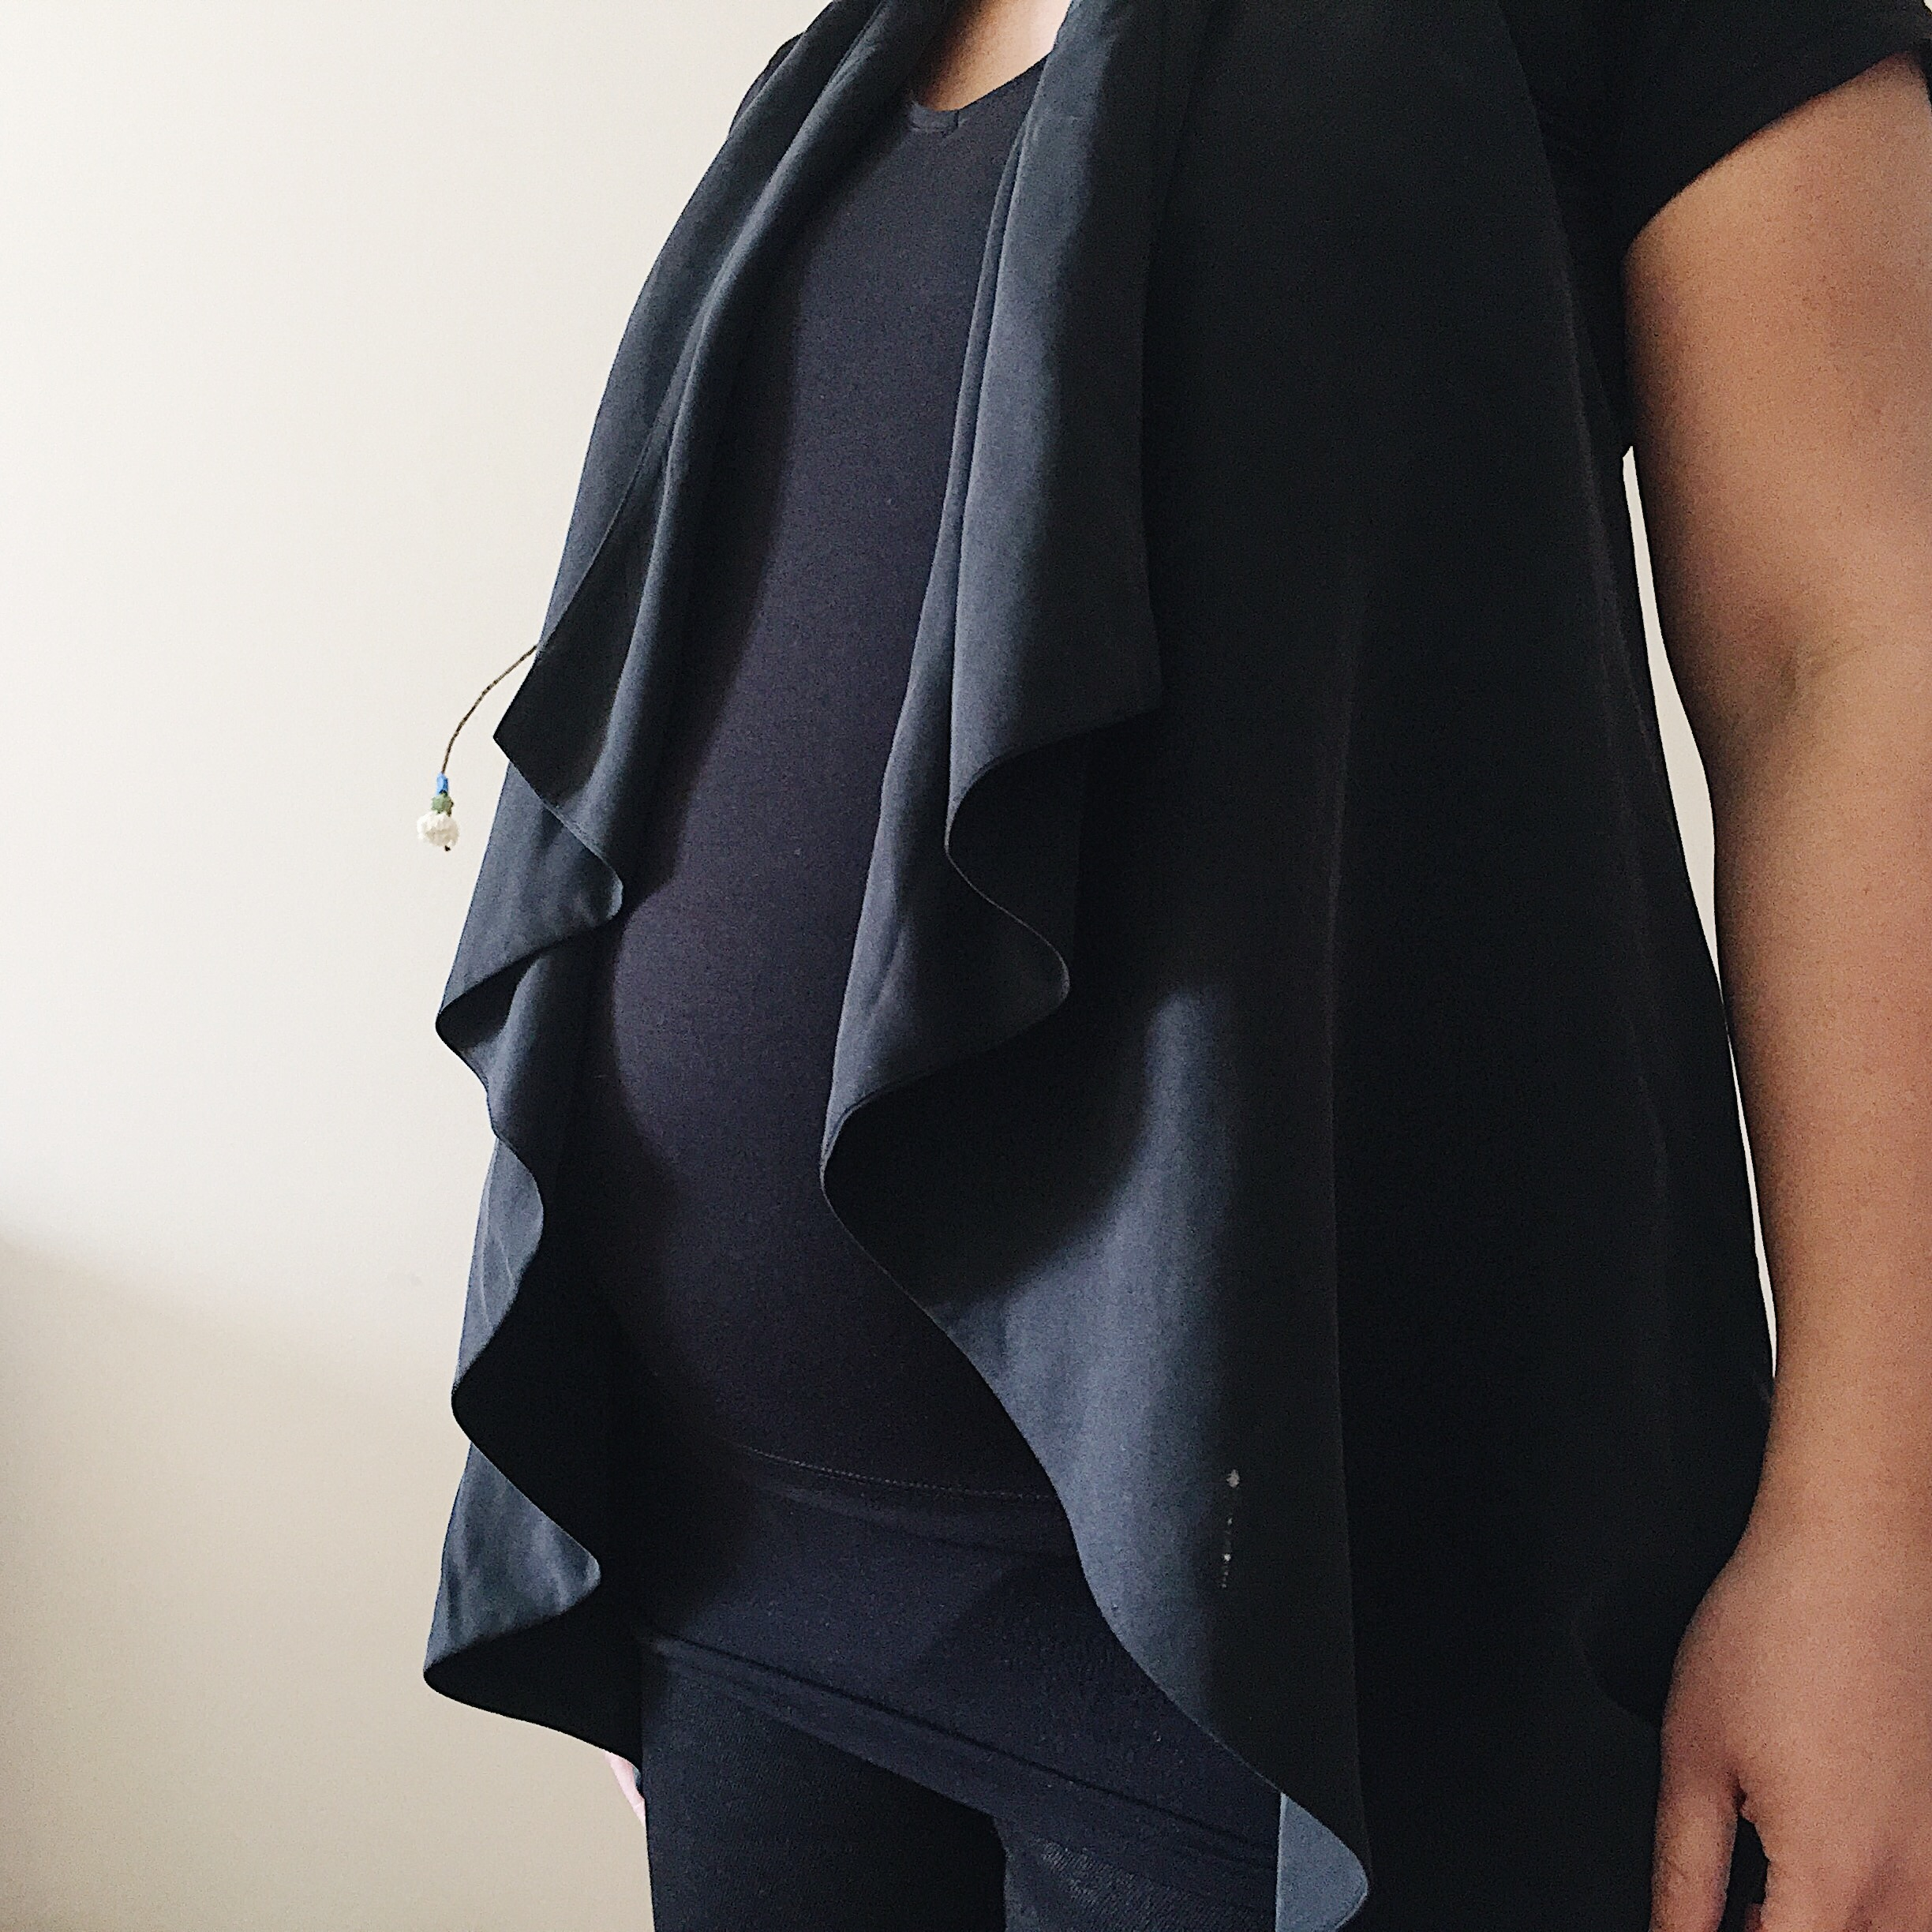 Sustainable Maternity Wear - Going with a vest that I never wore, but now seems to work.